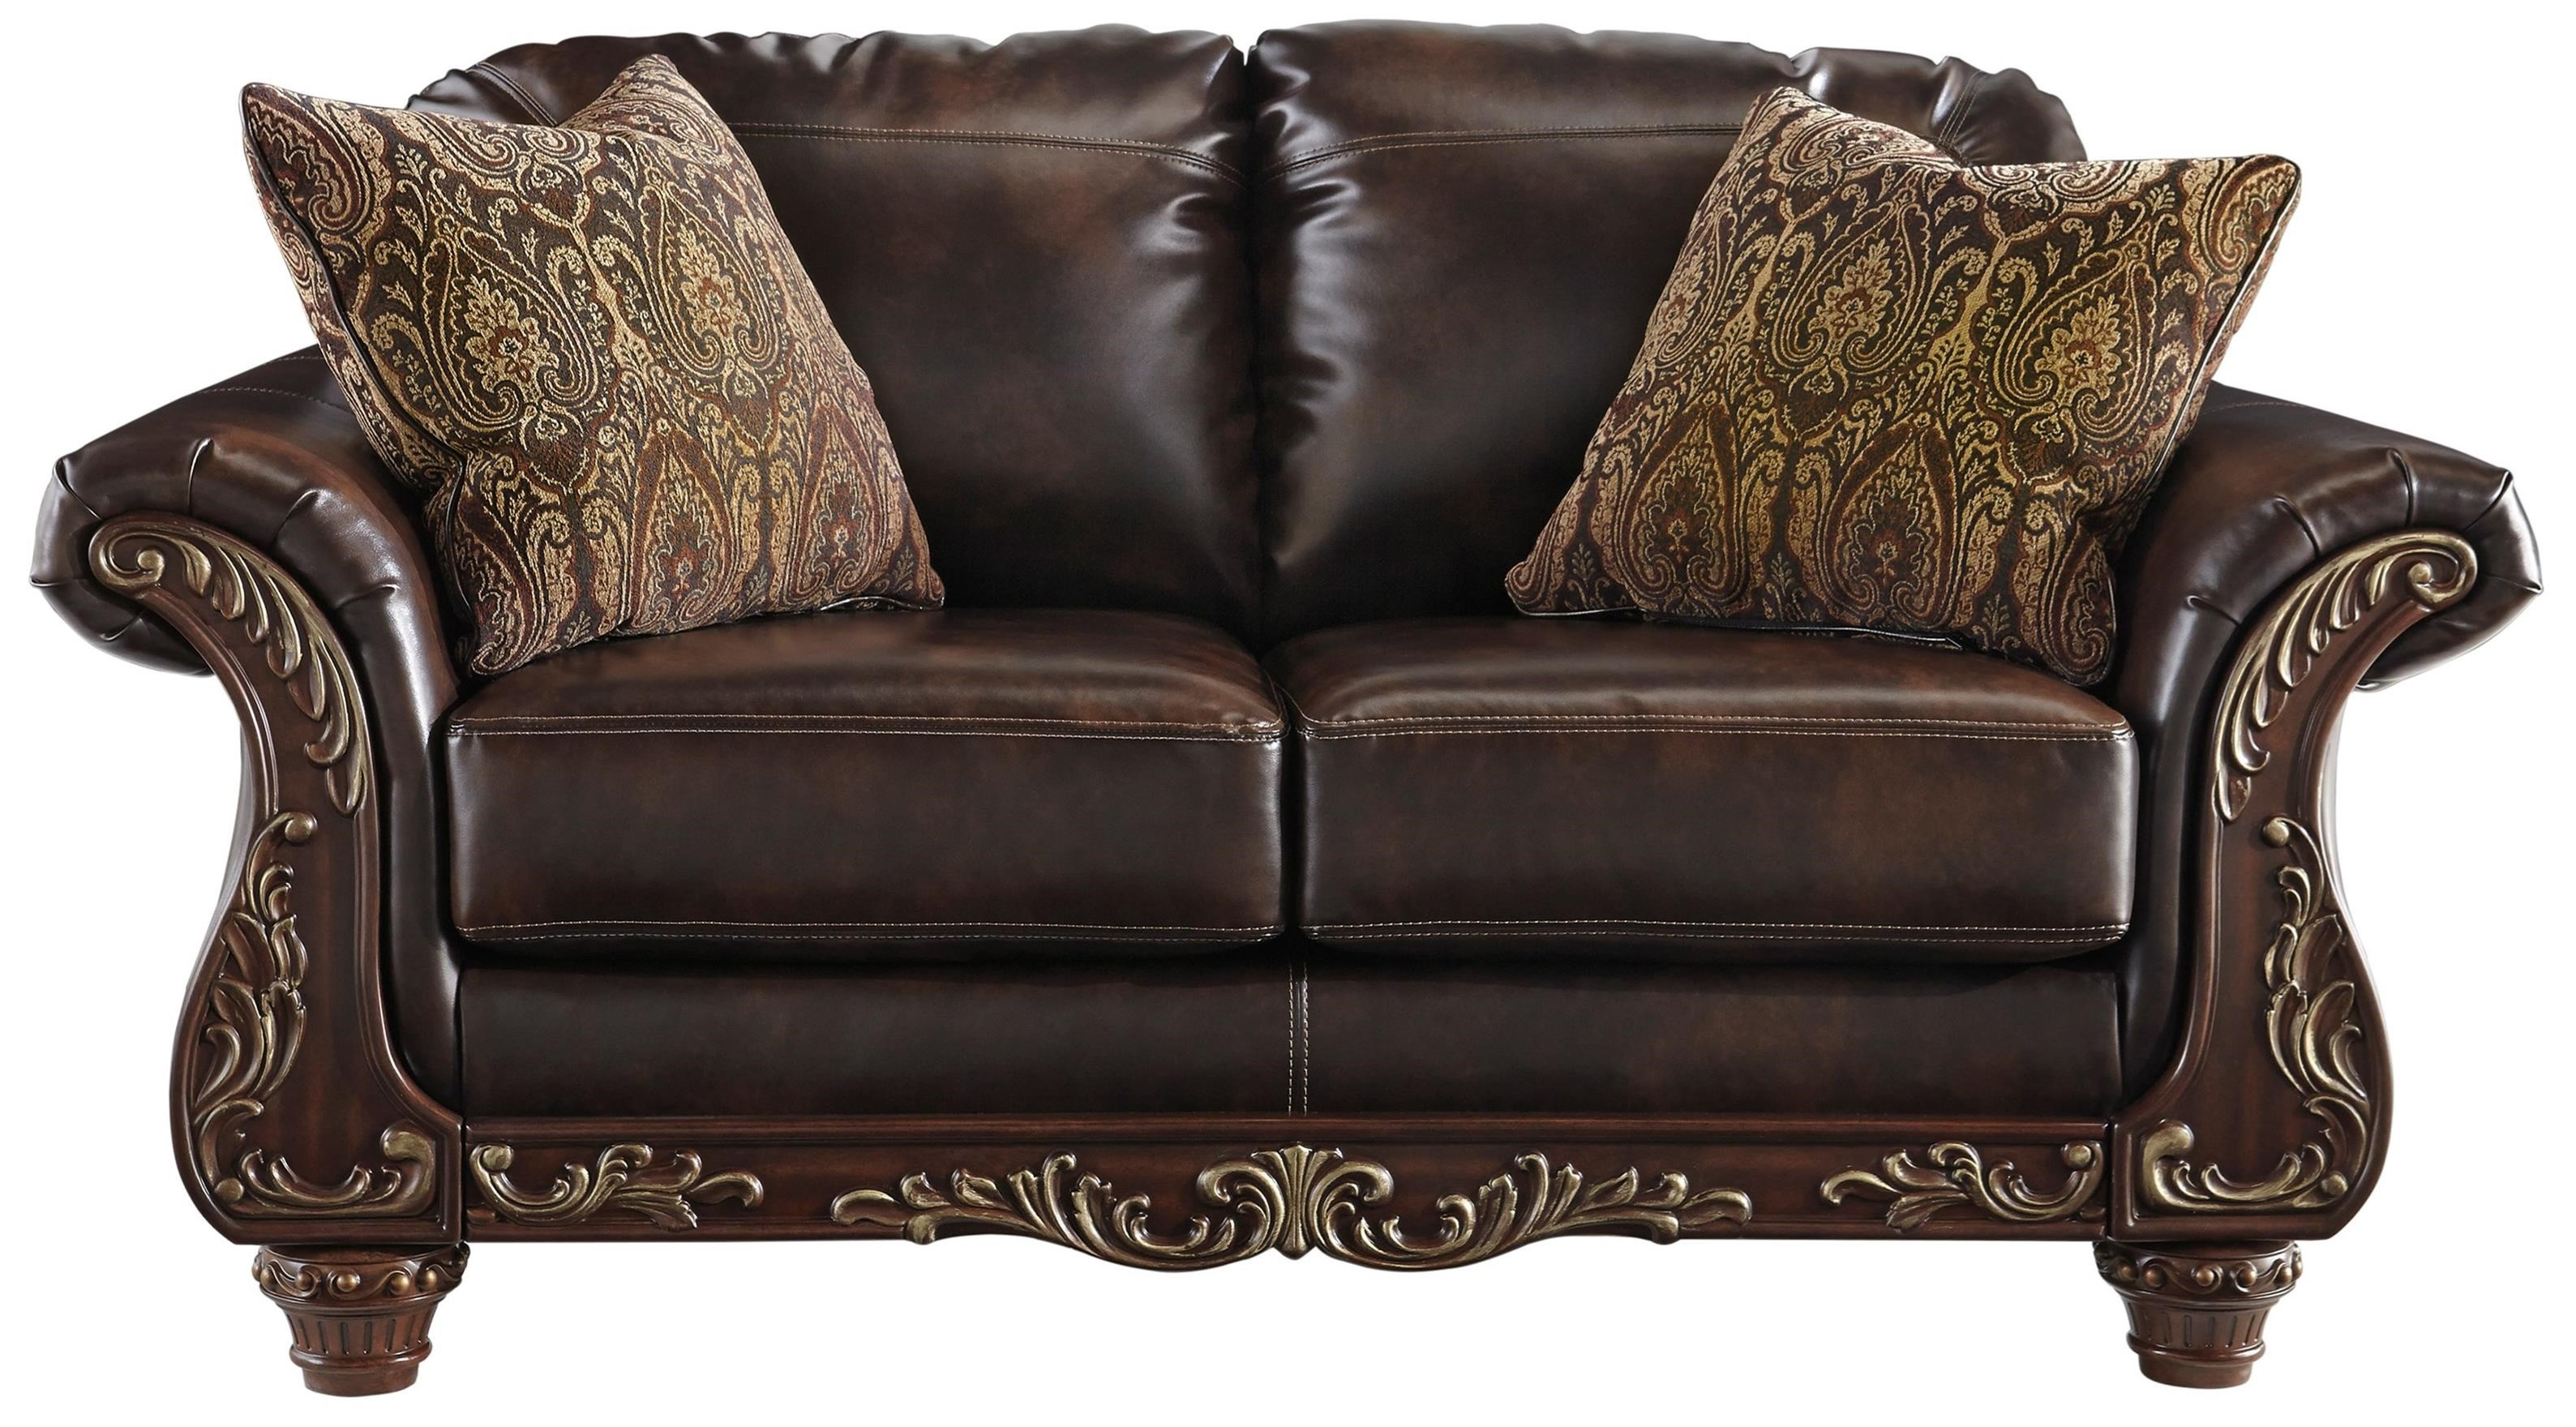 Signature Design by Ashley Vanceton Loveseat - Item Number: 6740235